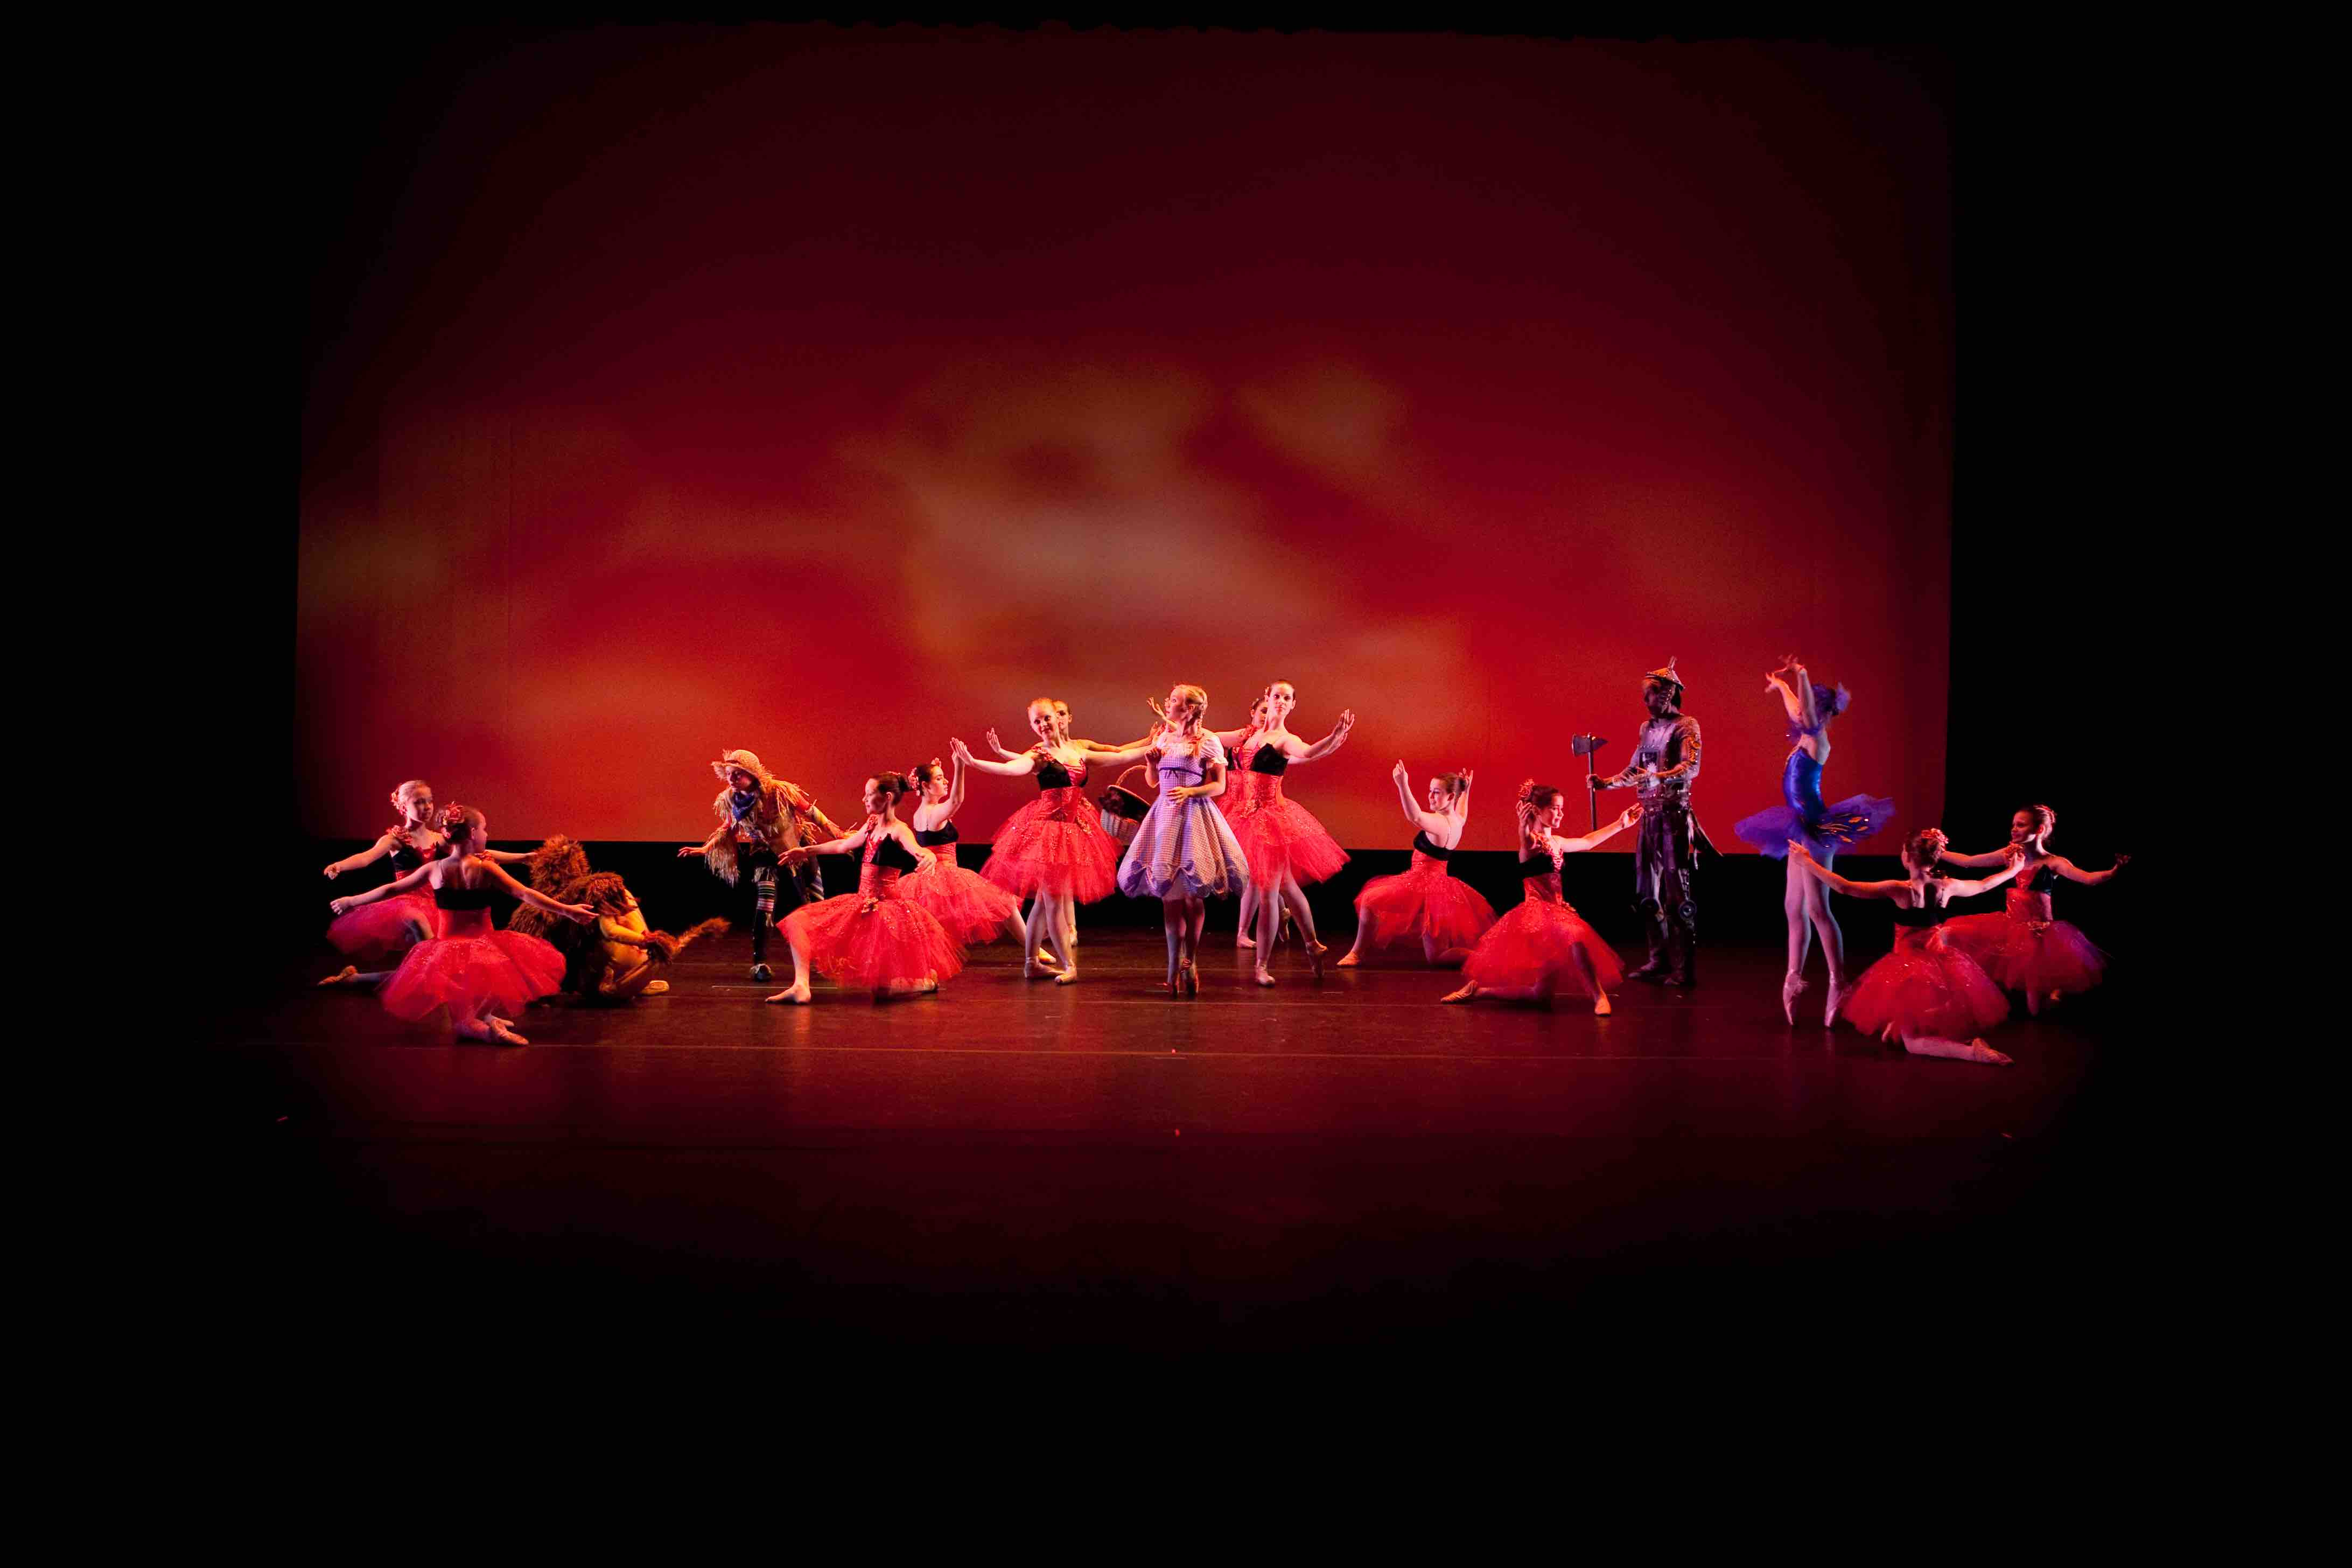 Dancers in red surrounding Dorthy from The Wizard of Oz Ballet